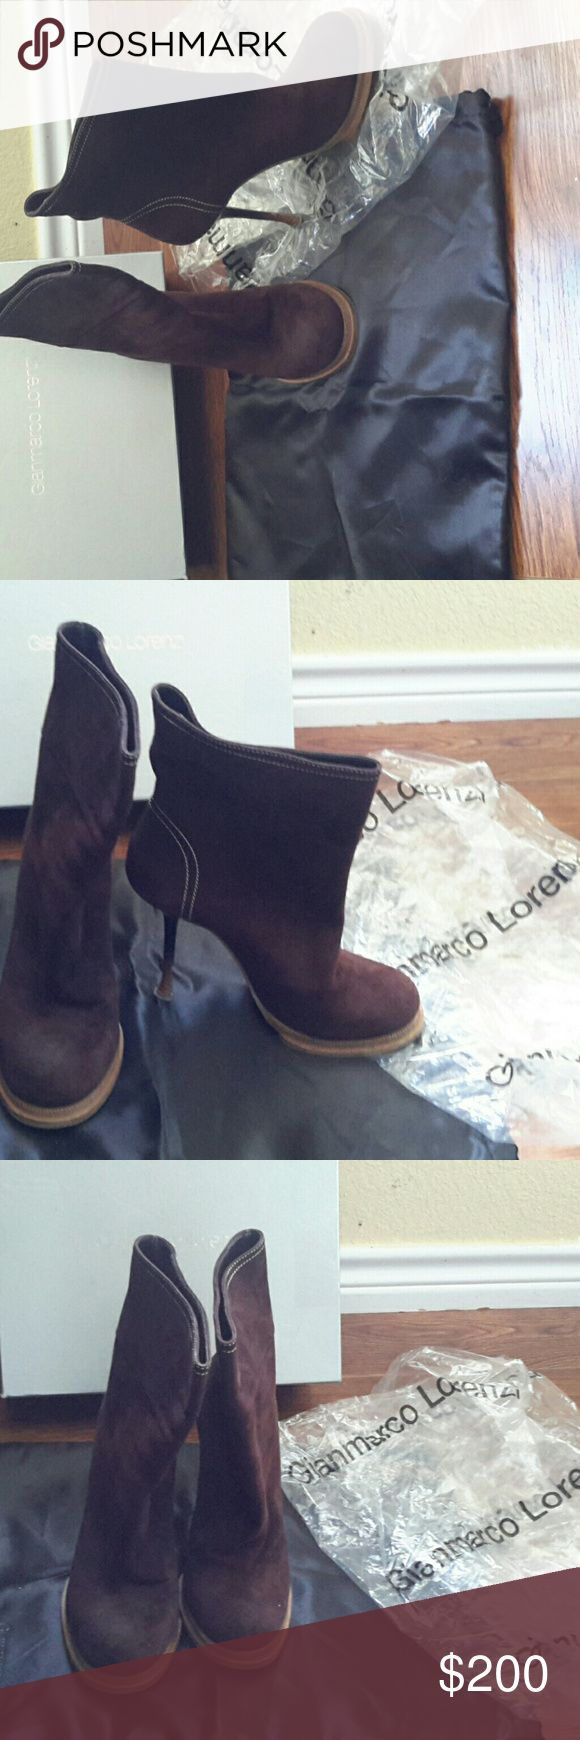 GIANMARCO LORENZI BROWN BOOT SZ. EU39 /US 8.5 THE BOOTS AR? IN VERY GOOD CONDITIONS USED TWO OR THREE TIMES Gianmarco Lorenzi  Shoes Ankle Boots & Booties